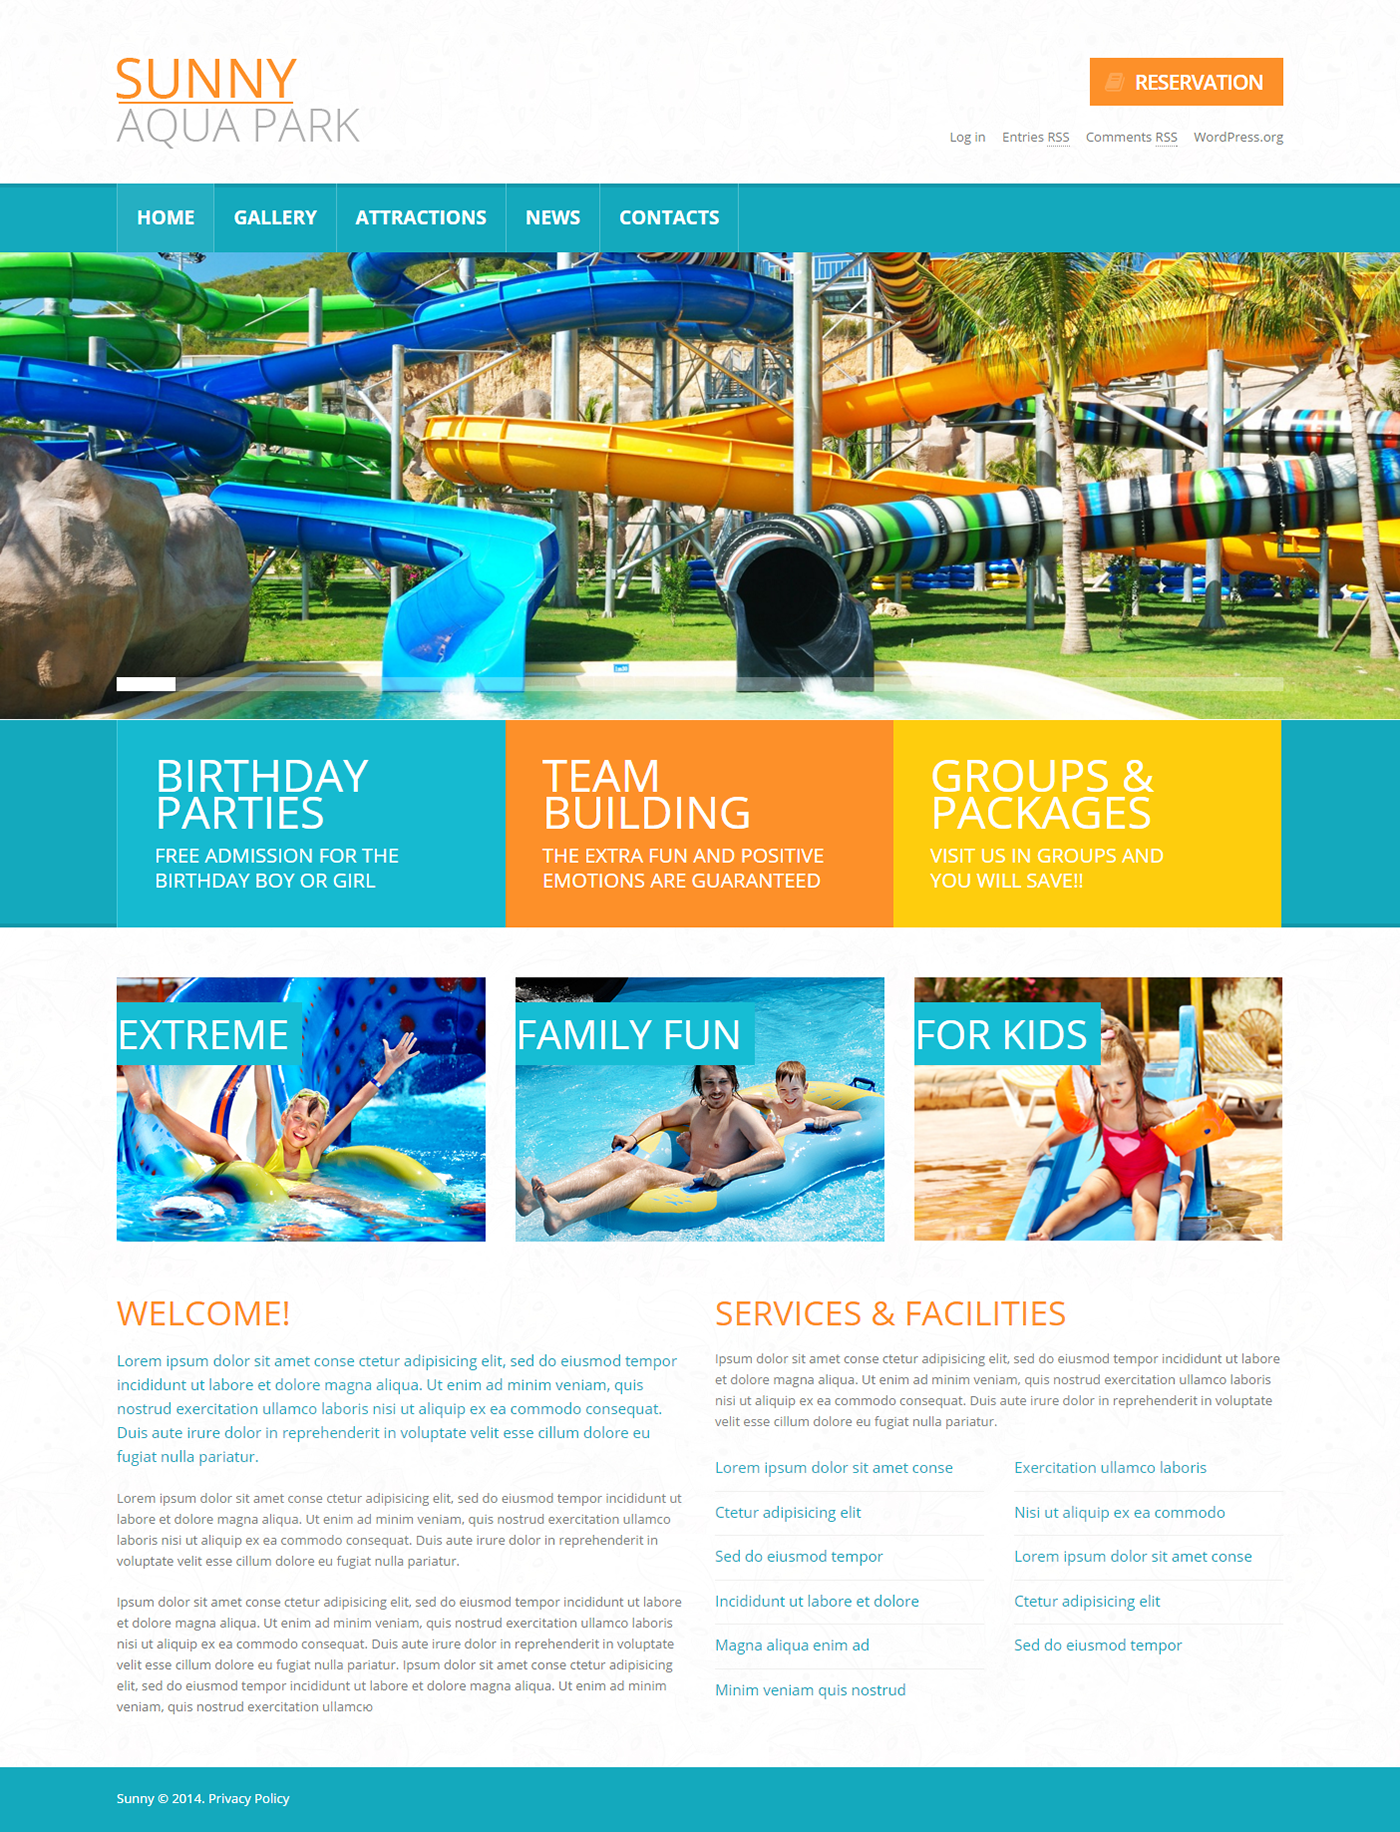 Water park wordpress theme on behance wordpress themes pinterest water park wordpress theme on behance maxwellsz